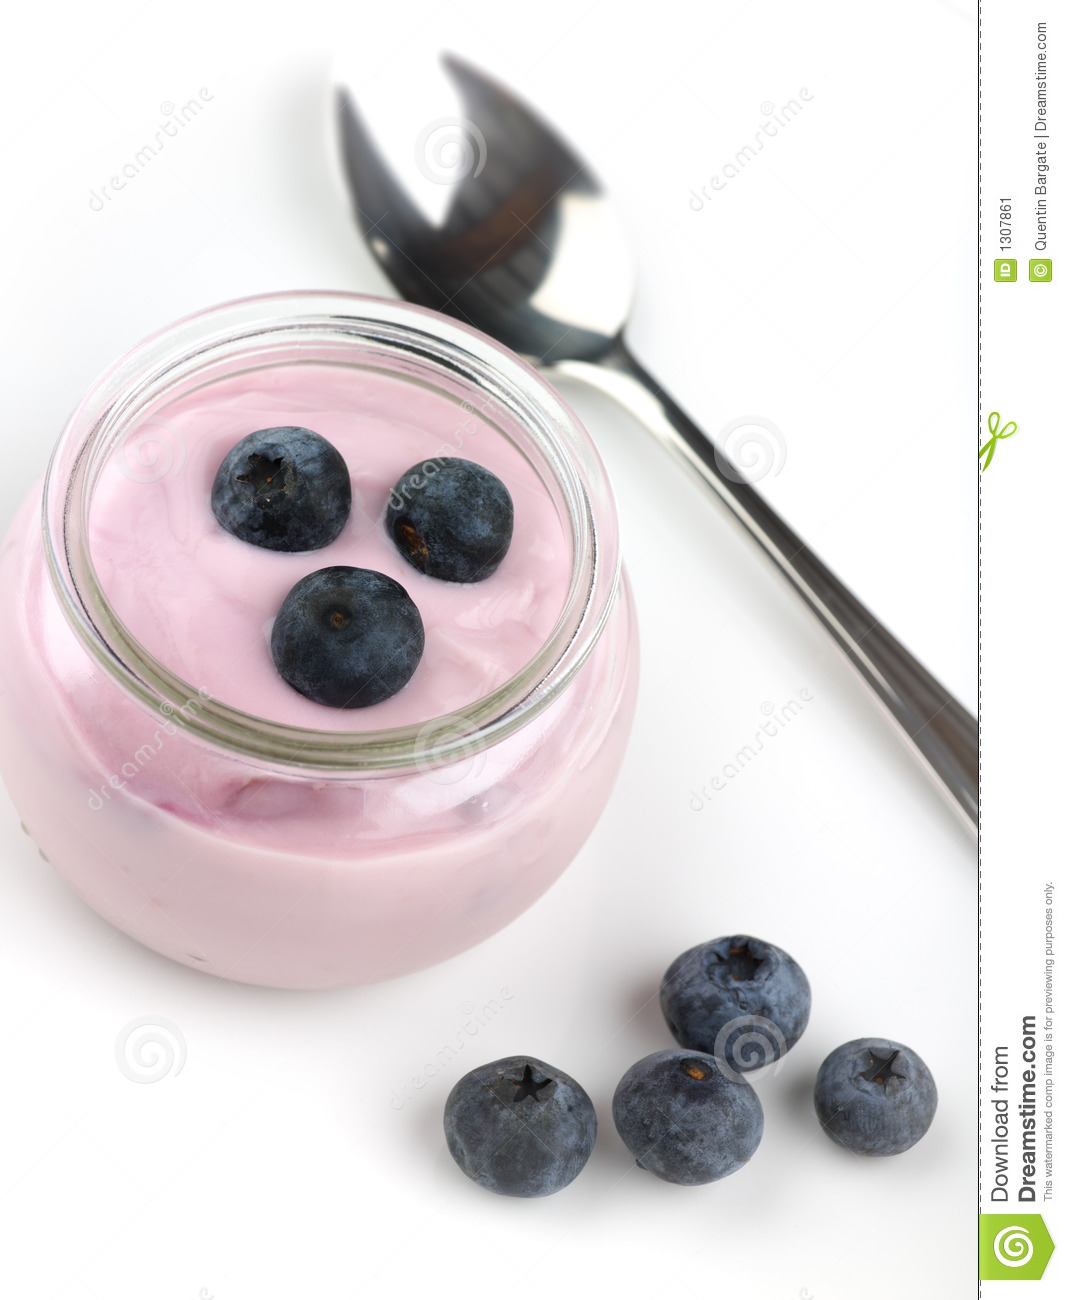 Yogurt pot with blueberry compliment